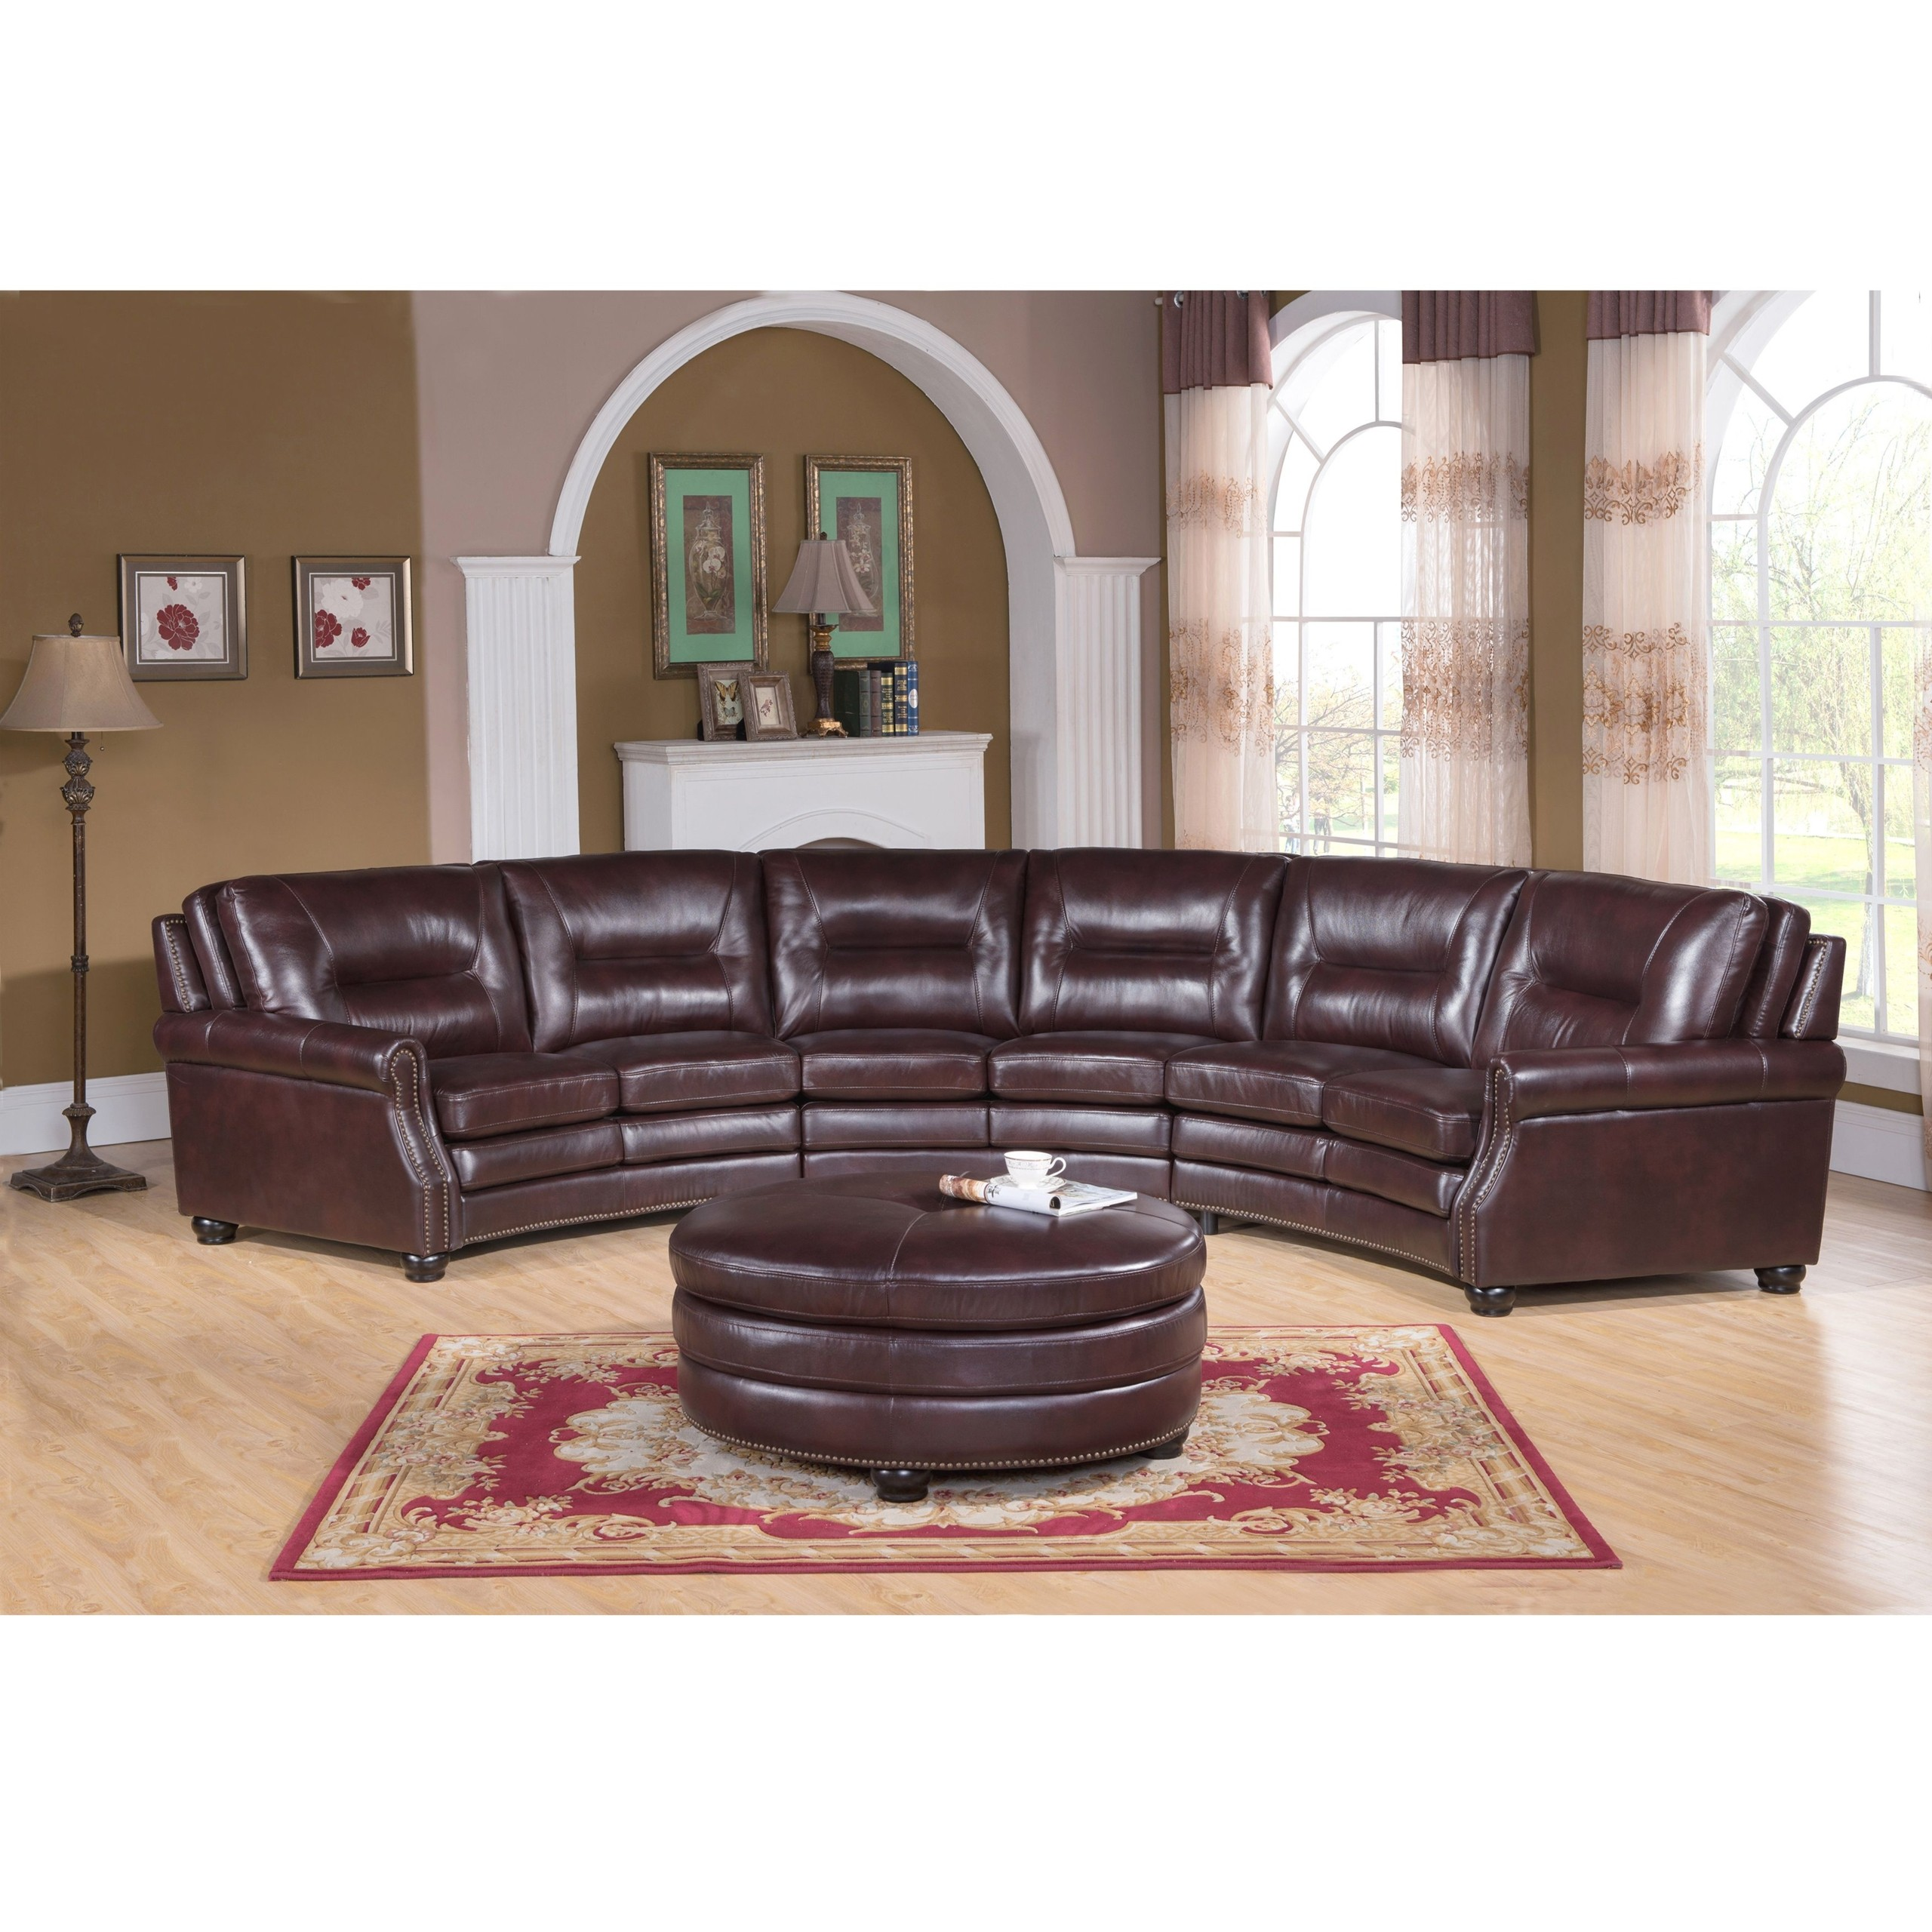 curved sectional sofa leather deep seat australia ideas on foter 3